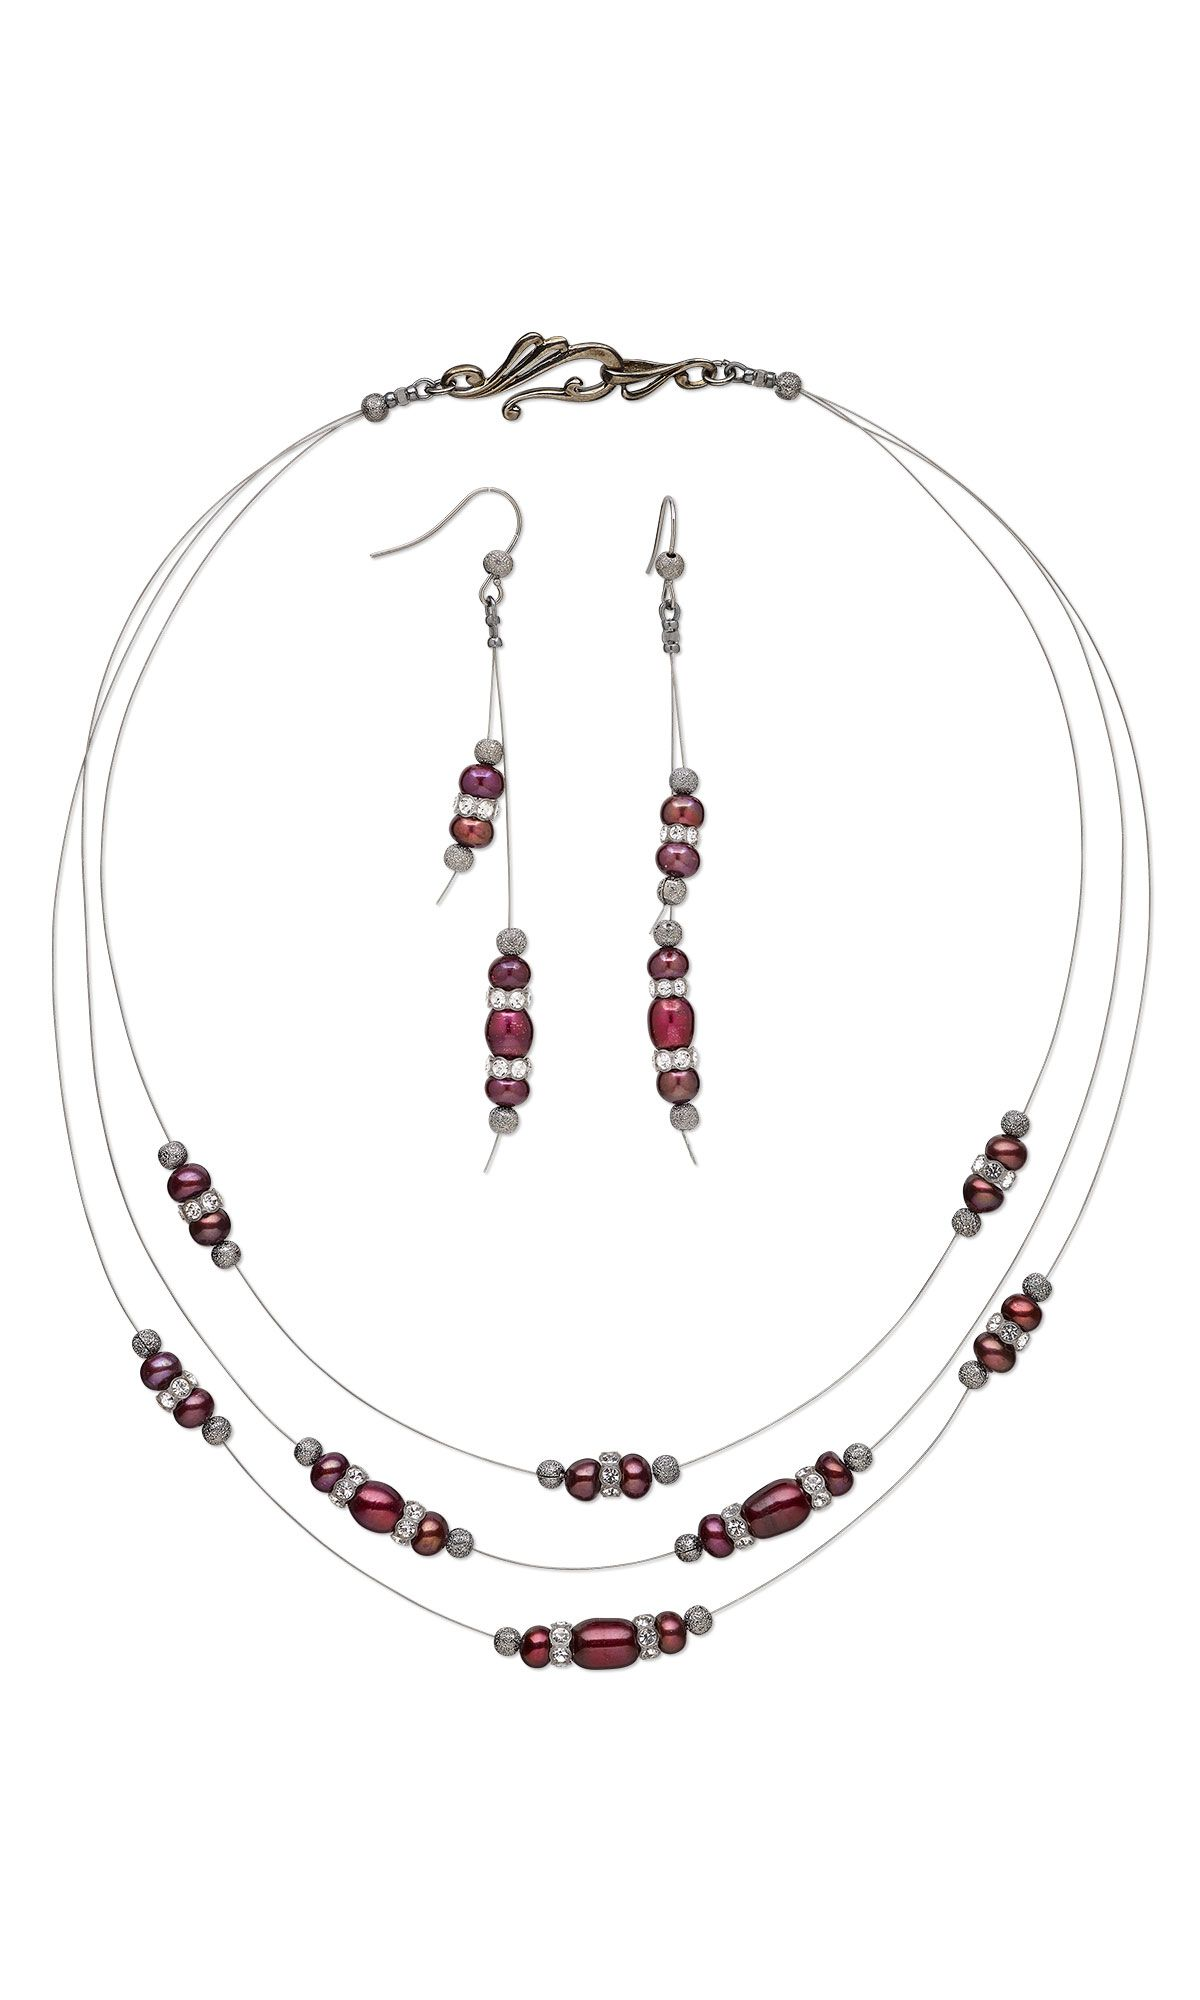 Jewelry Design - Triple-Strand Necklace and Earring Set with ...